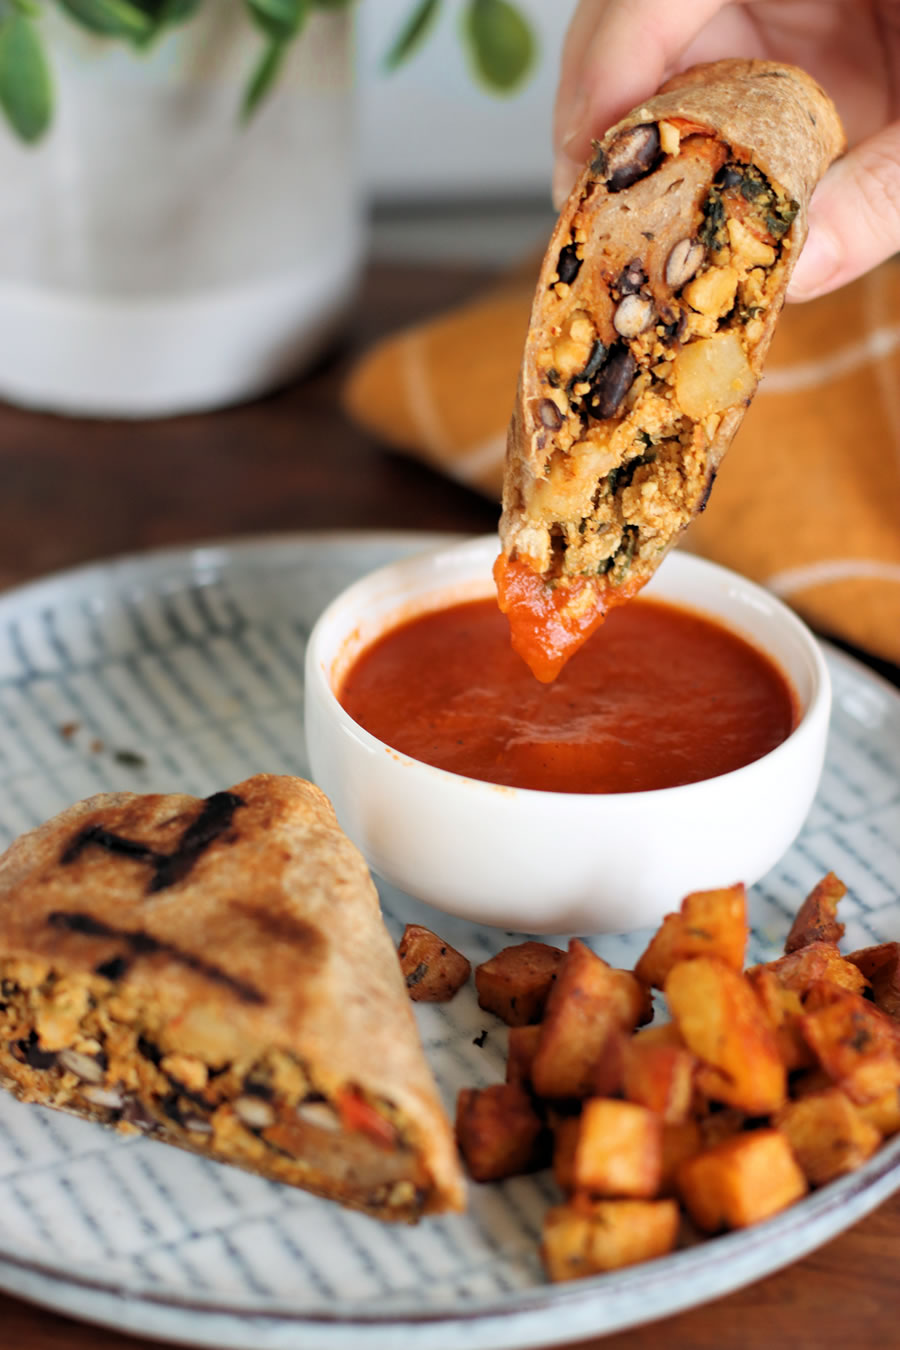 dipping the Veestro Breakfast Burrito in red sauce